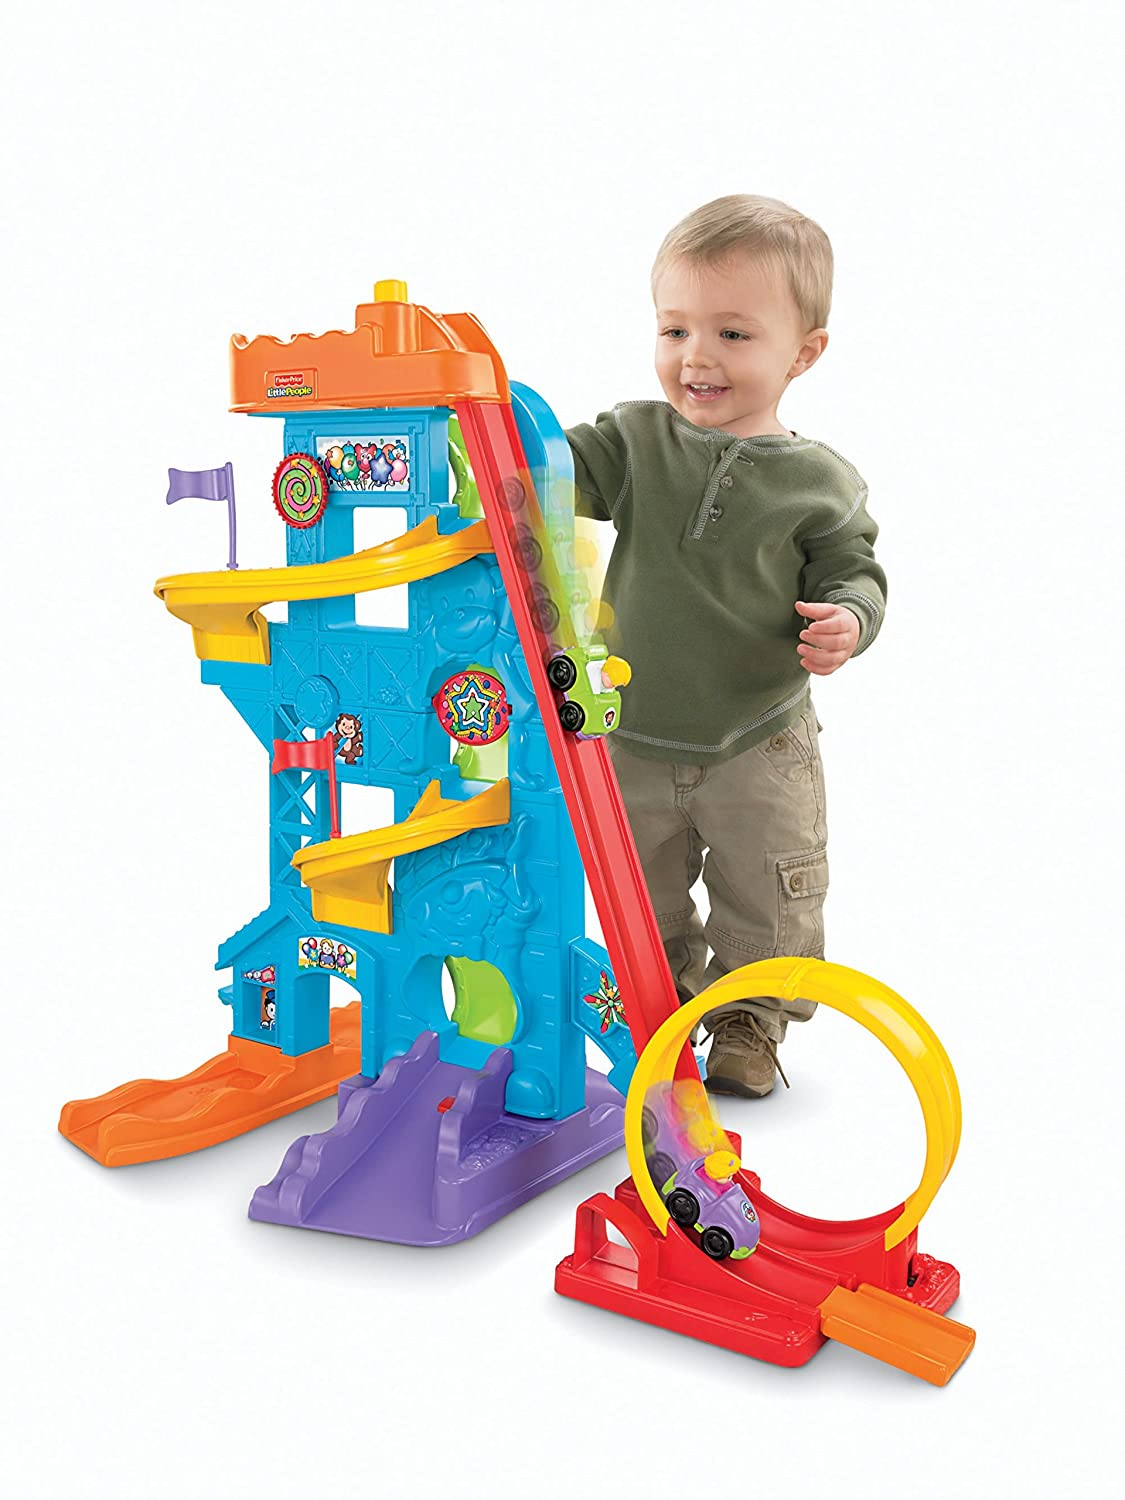 Year 12 For Boys Toys : Best toys for year old boys ⋆ perfect gift store